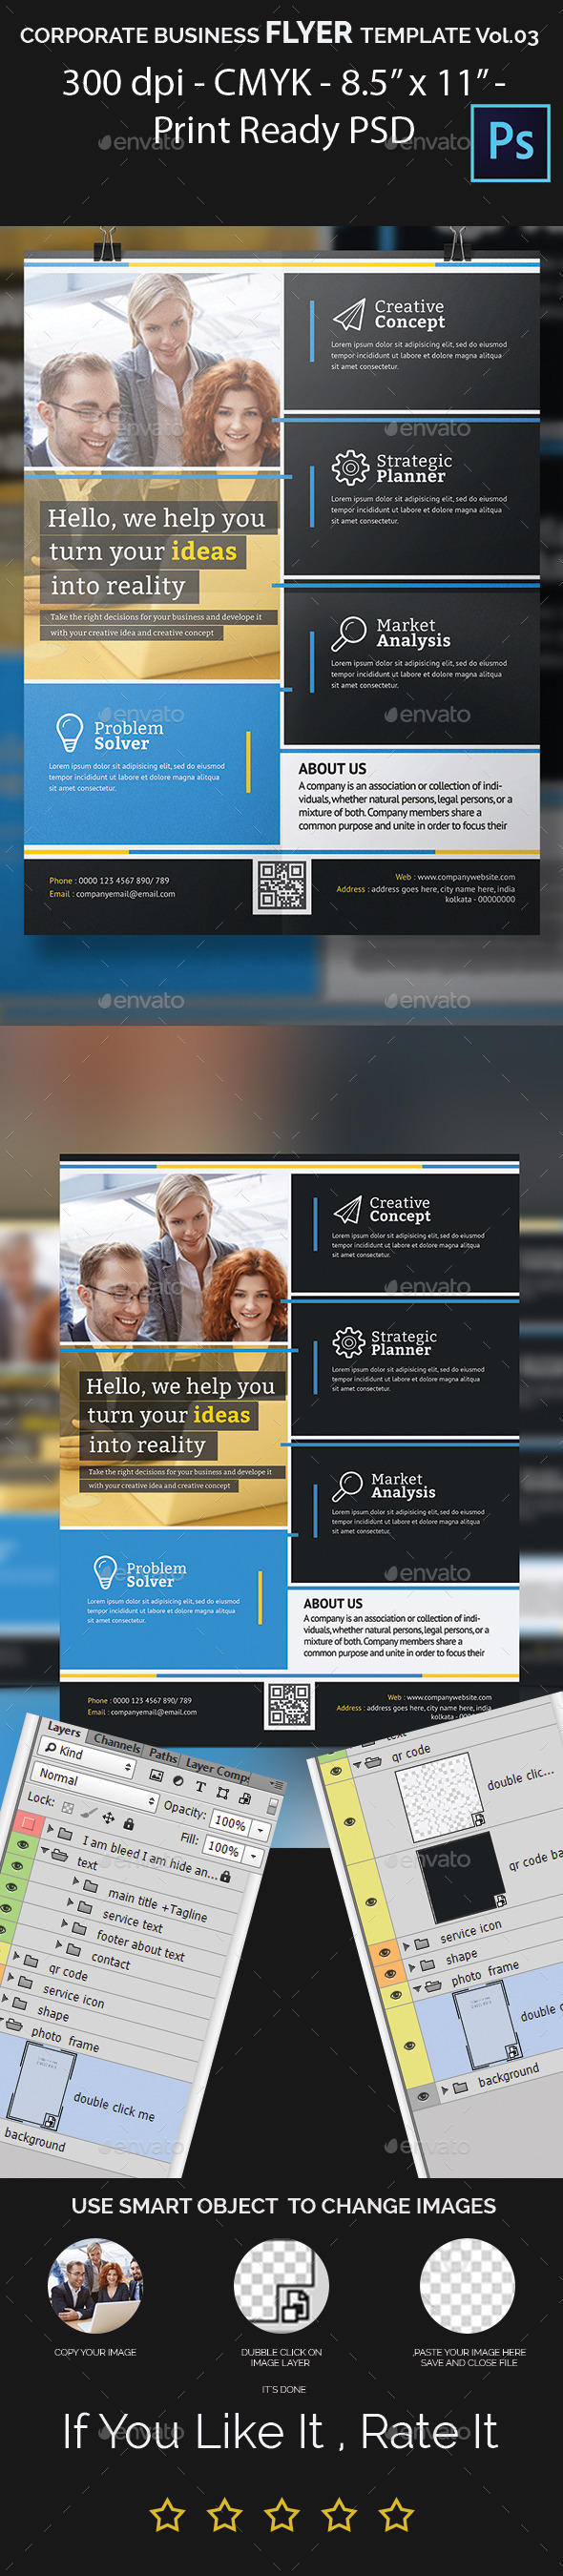 GraphicRiver Corporate Business Flyer Template Vol.03 11844245